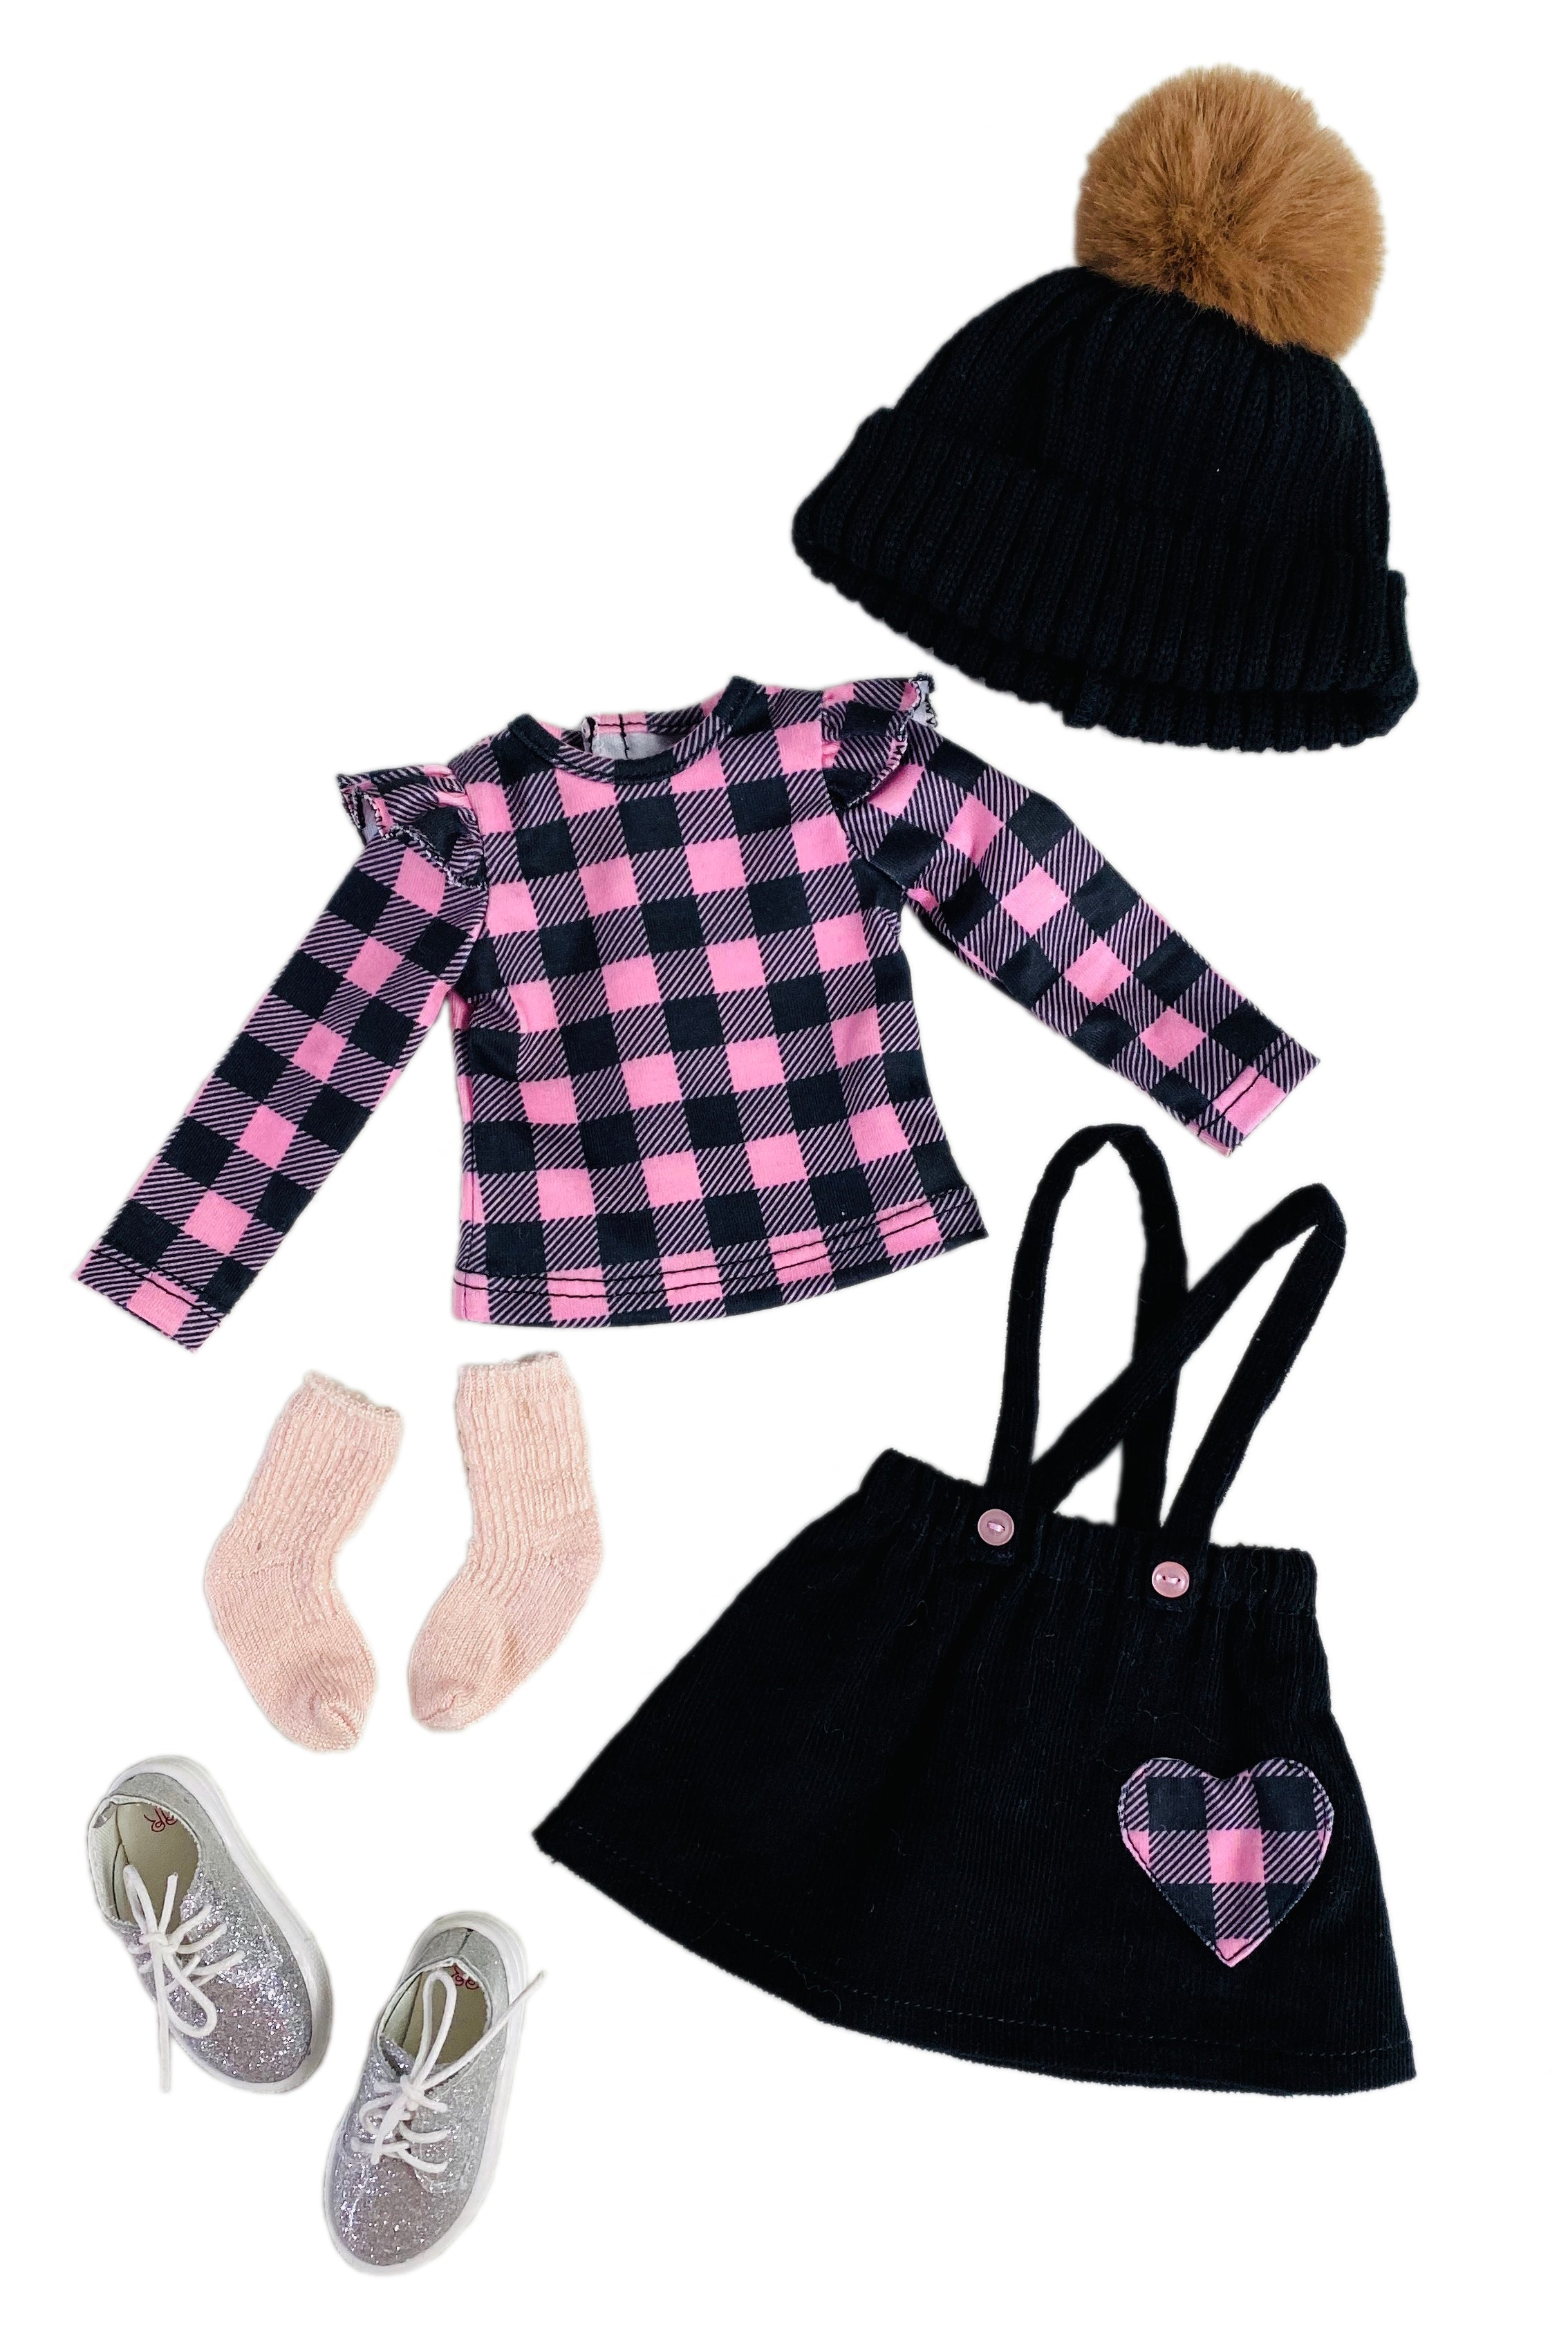 Ruffle Love Outfit